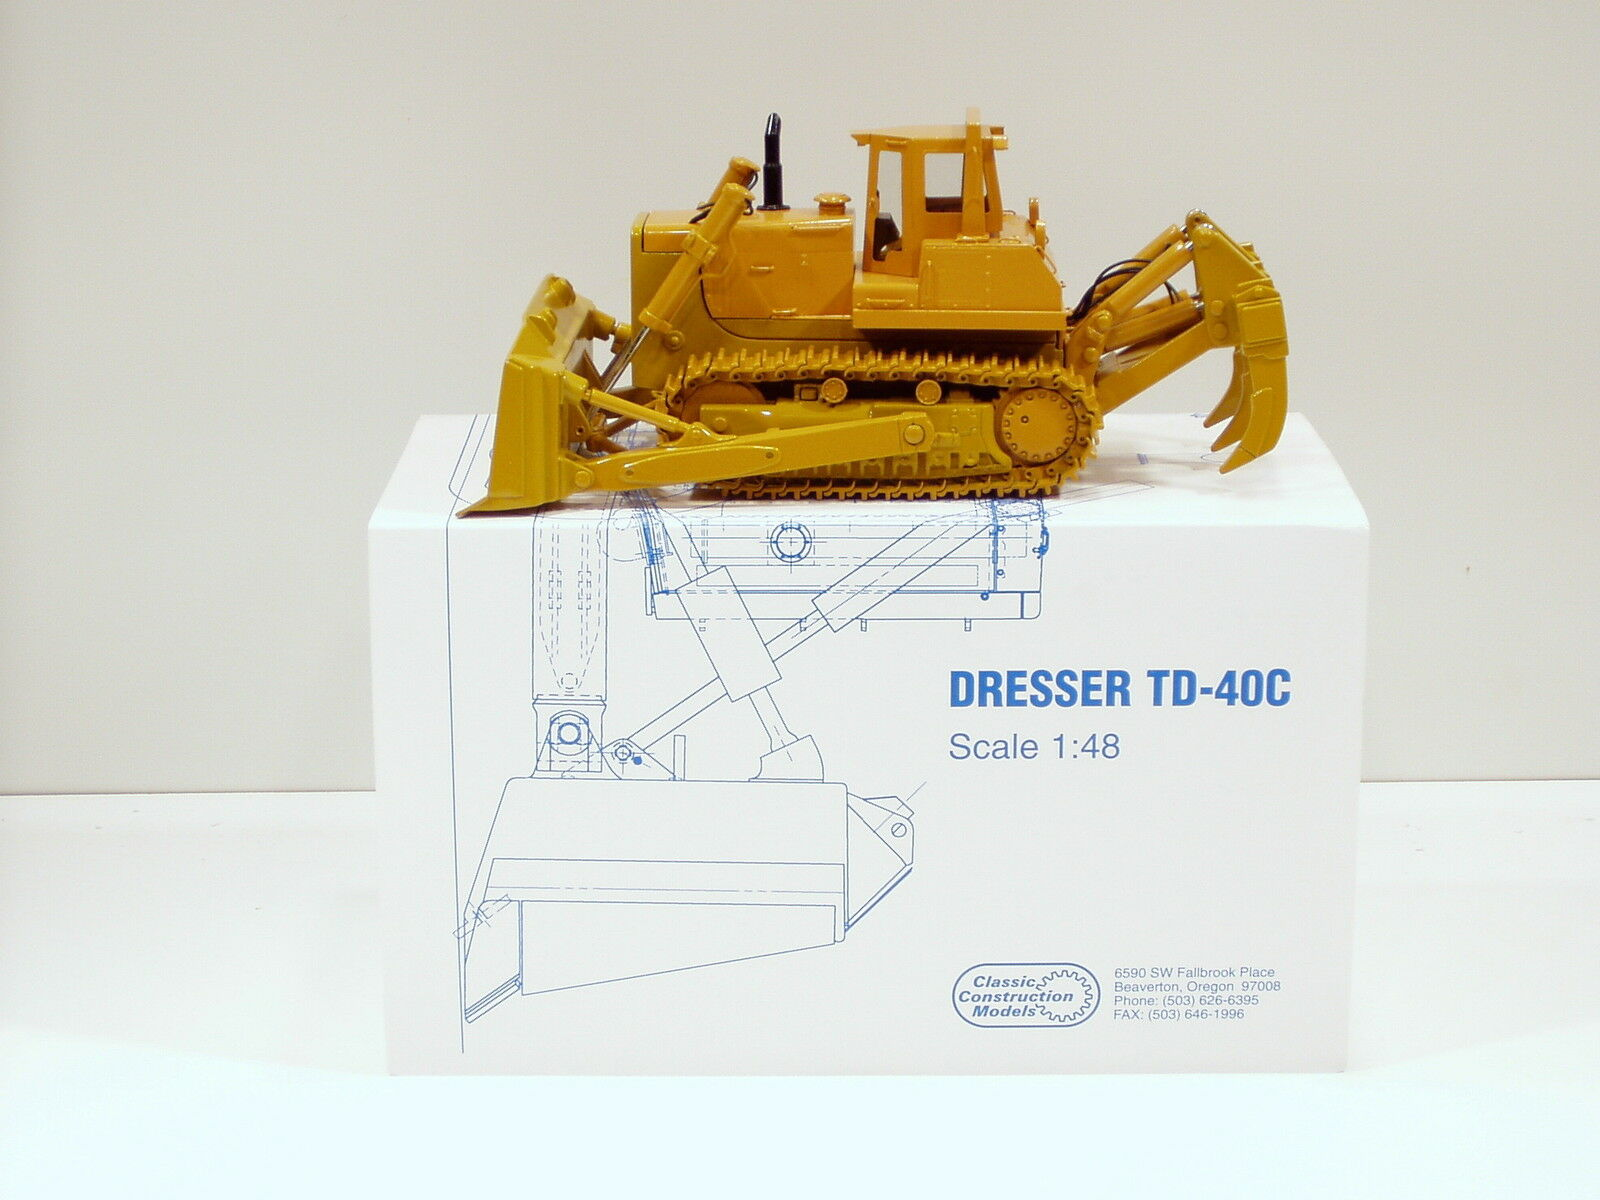 Commode TD40C DOZER with Cab & Ripper - 1 48 - CCM-NO DECALS